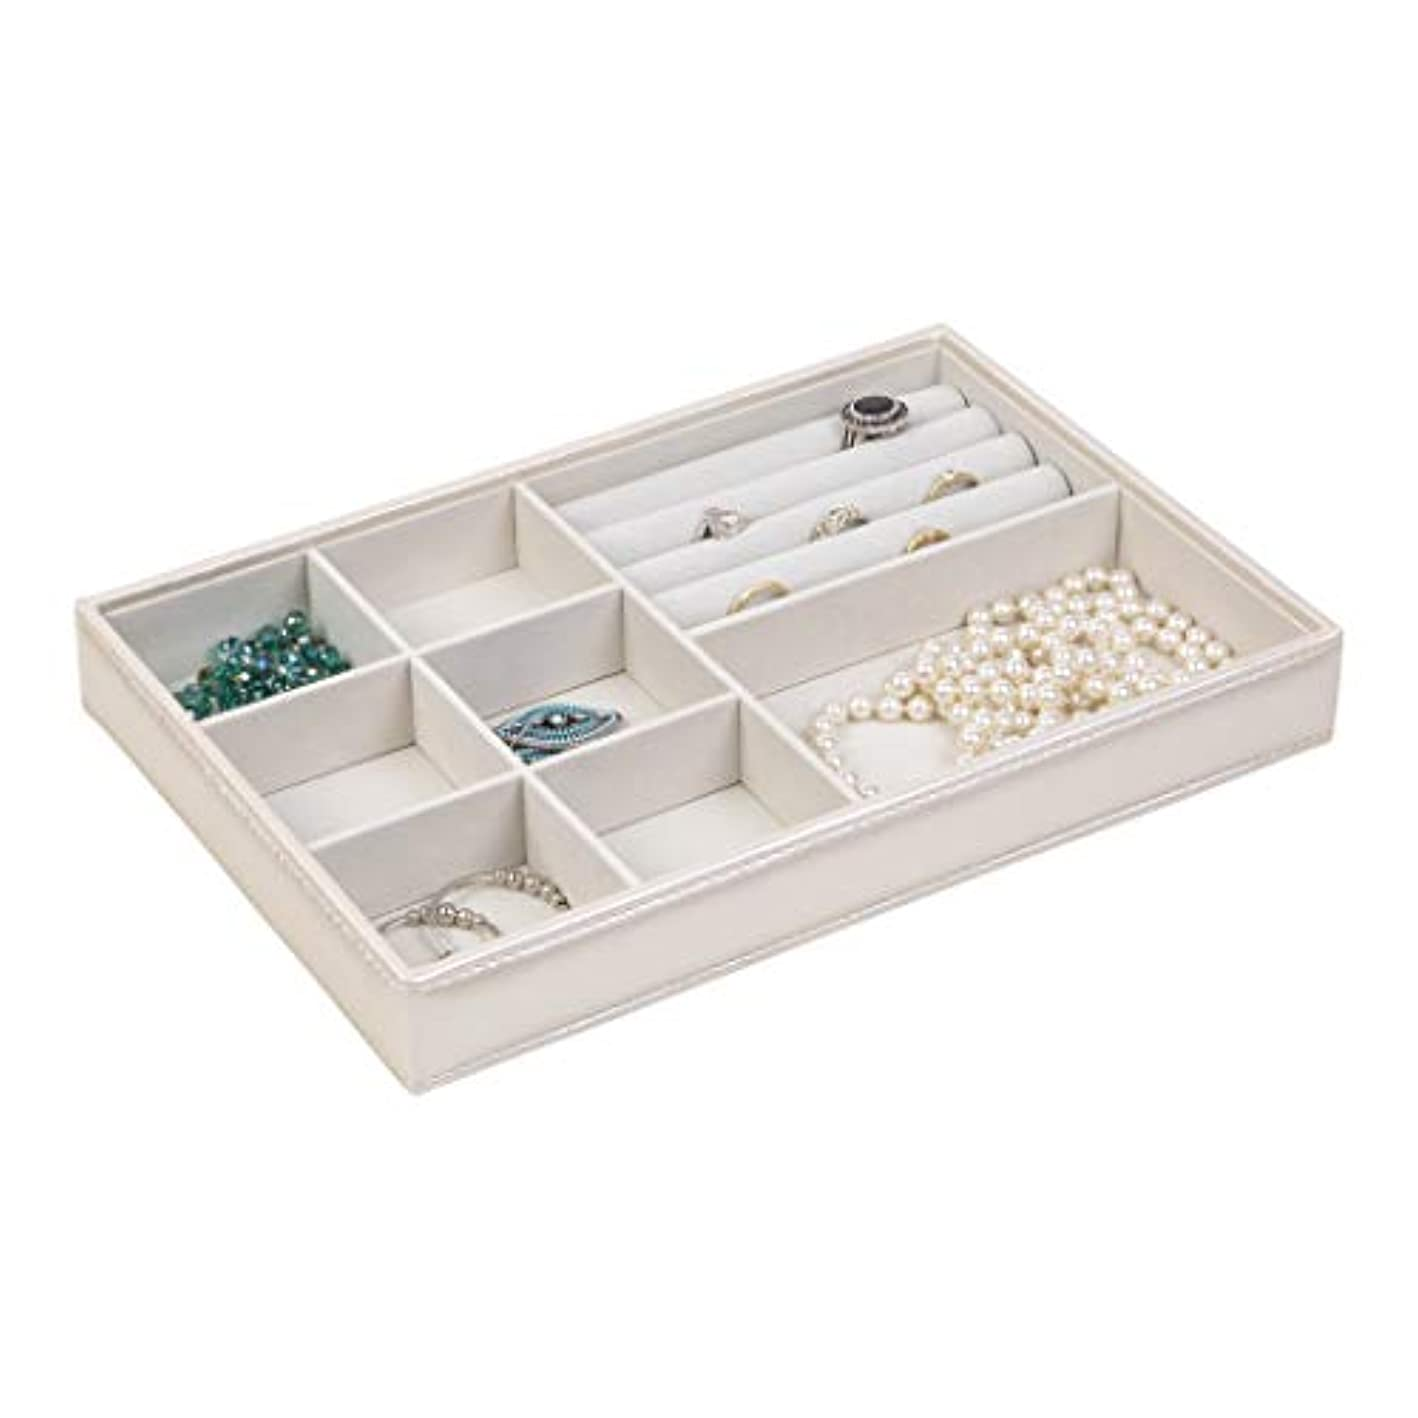 Richards Homewares Tray with Ring, Display and Storage, Holder for Earrings, Bracelets, Necklaces & All Kinds of jewelries – 8 Compartment-Champagne, 12 x 8 x 1.6,